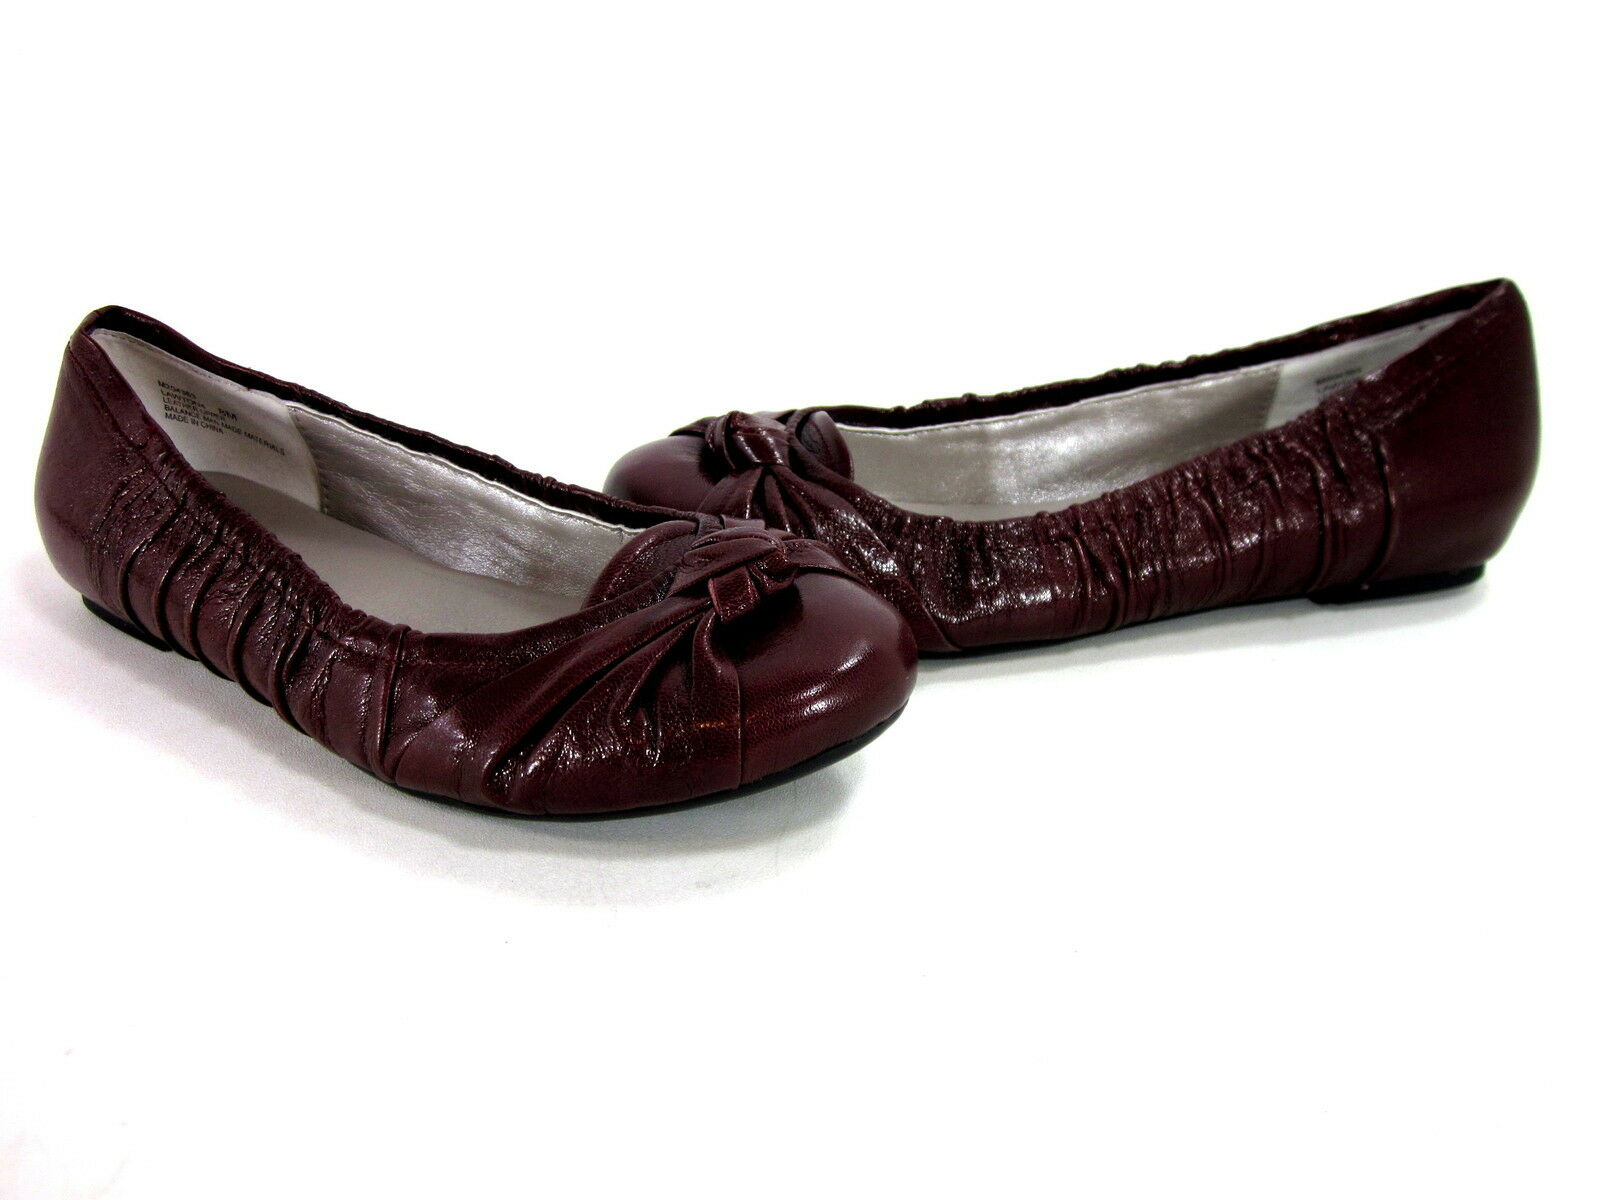 07143ff9124ca ME TOO LAWTON WOMEN S COMFORT BURGUNDY LEATHER US SIZE 7.5 MEDIUM BALLET  FLATS ottcjs573-Women s Comfort Shoes